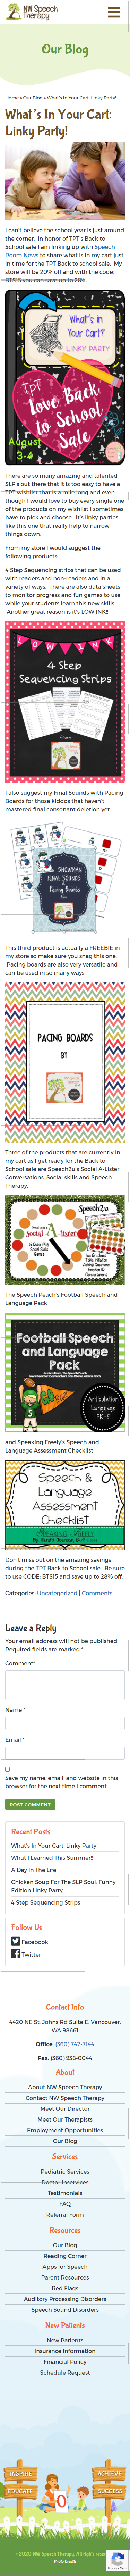 NW Speech Therapy Website Mobile Mockup 2